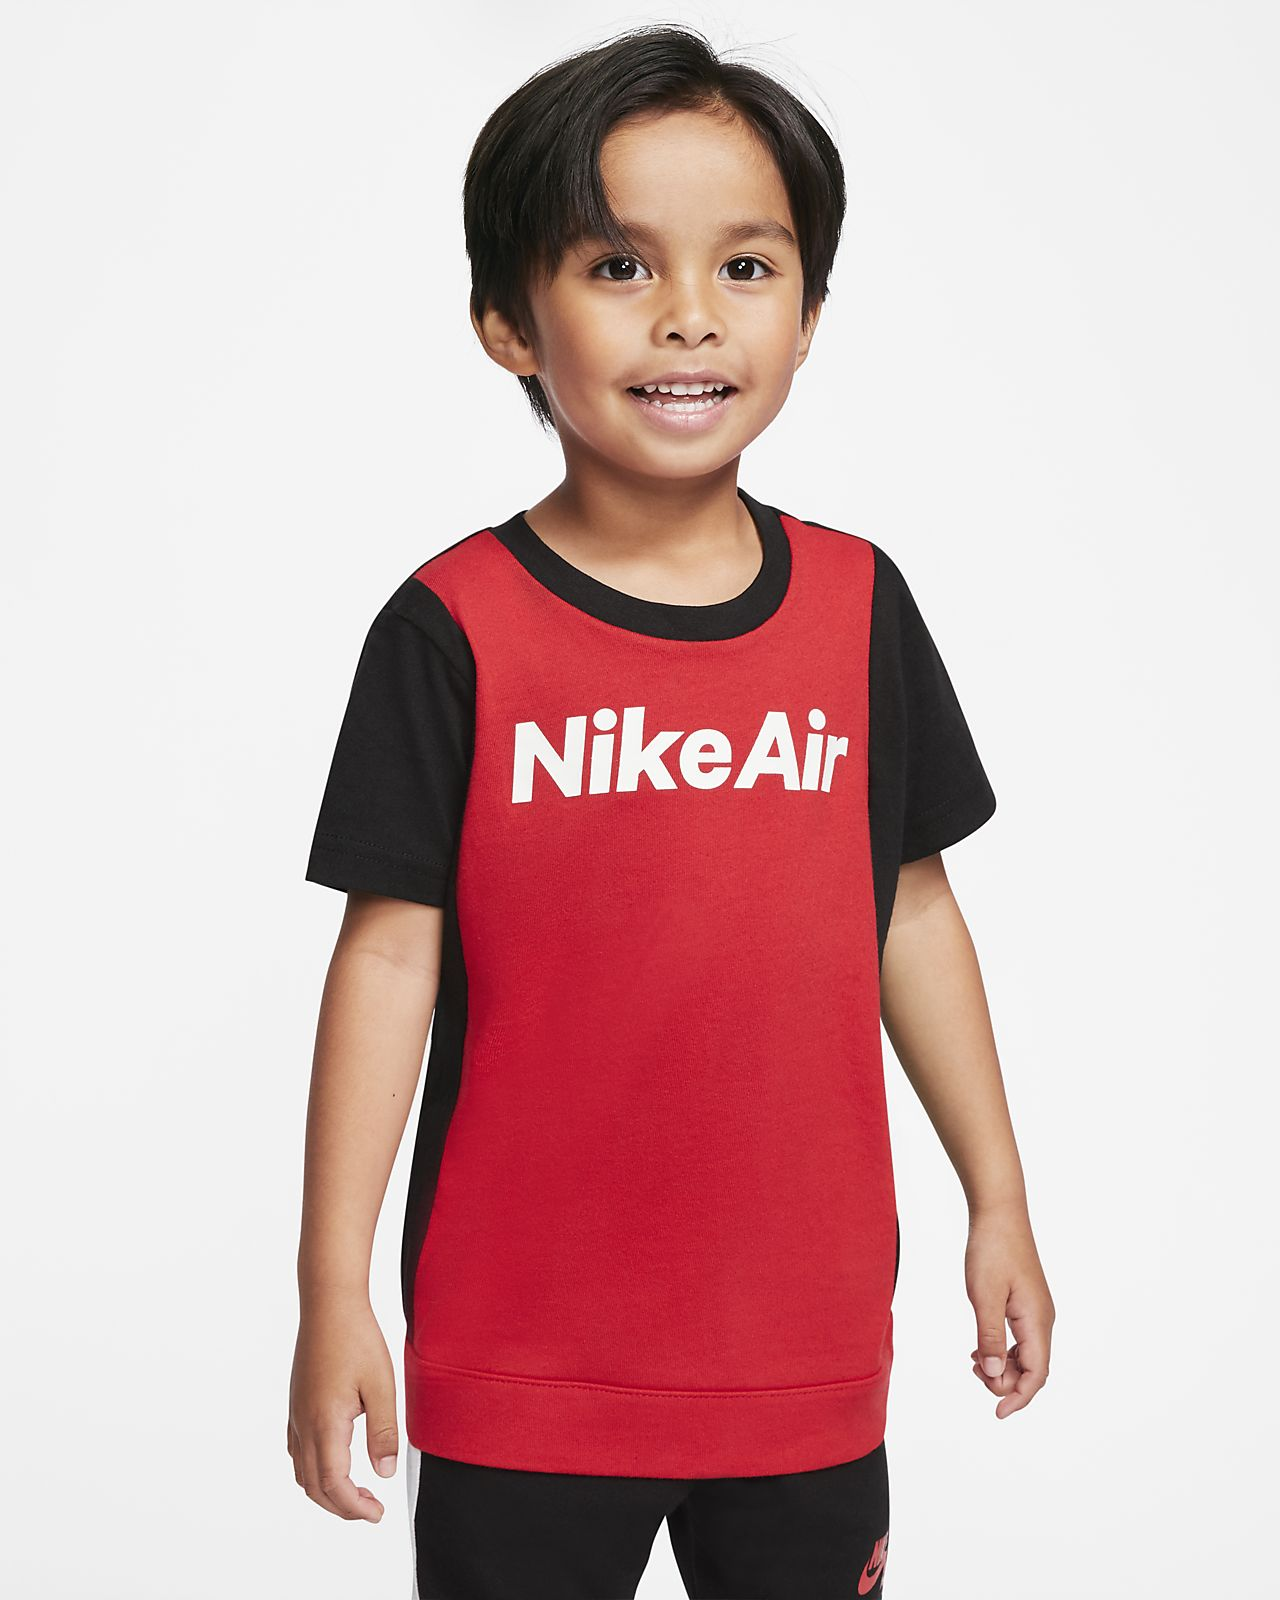 Nike Air Toddler T-Shirt